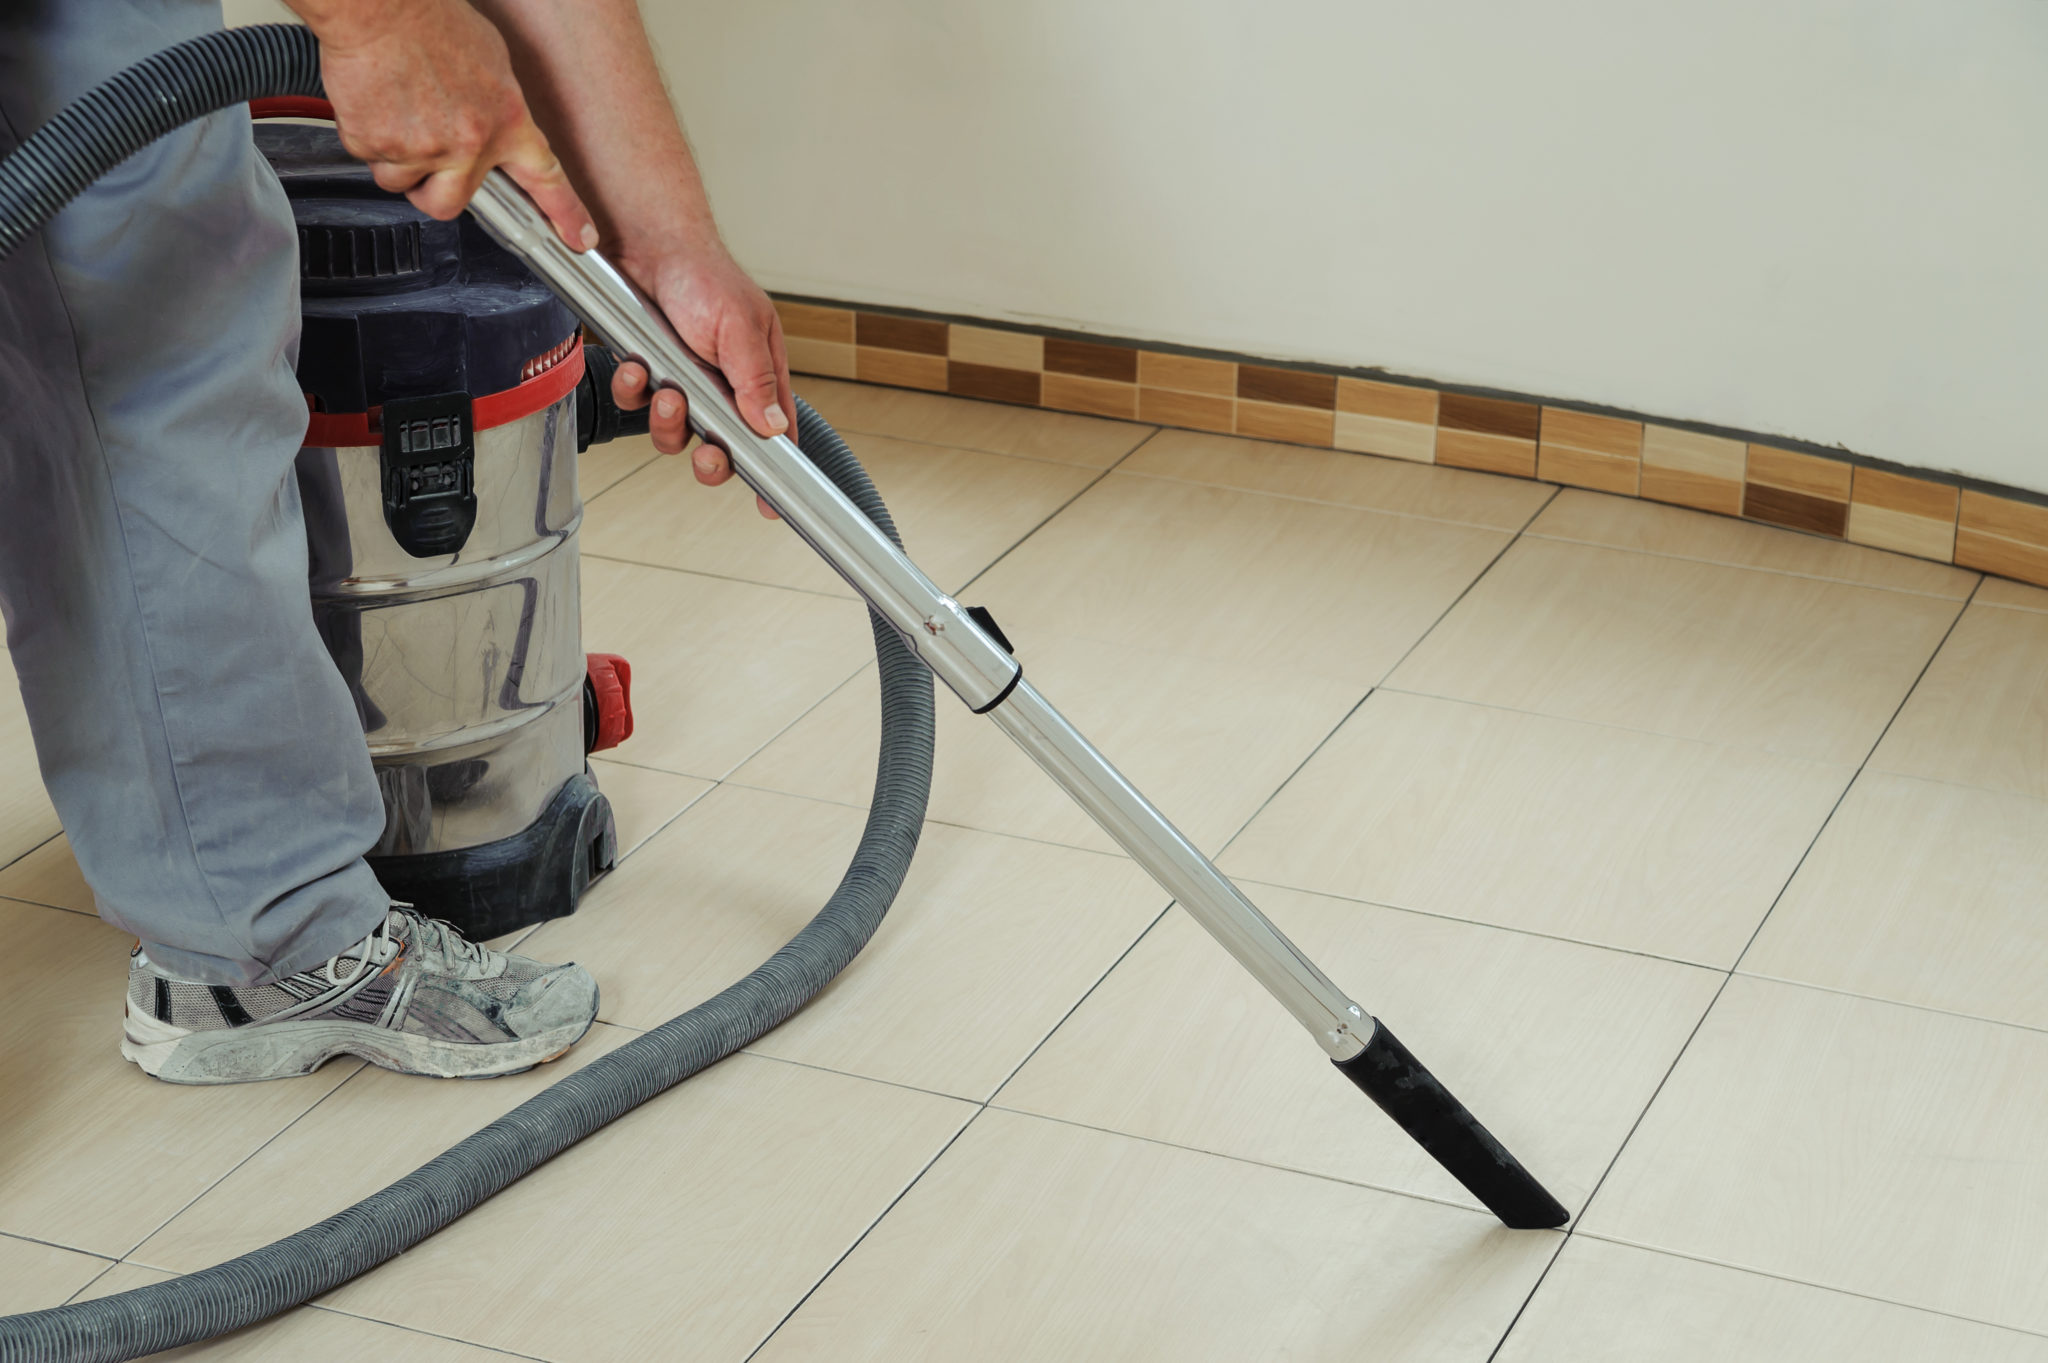 cleaning kitchen floors how to clean tile floors tips to remove any stain 2236